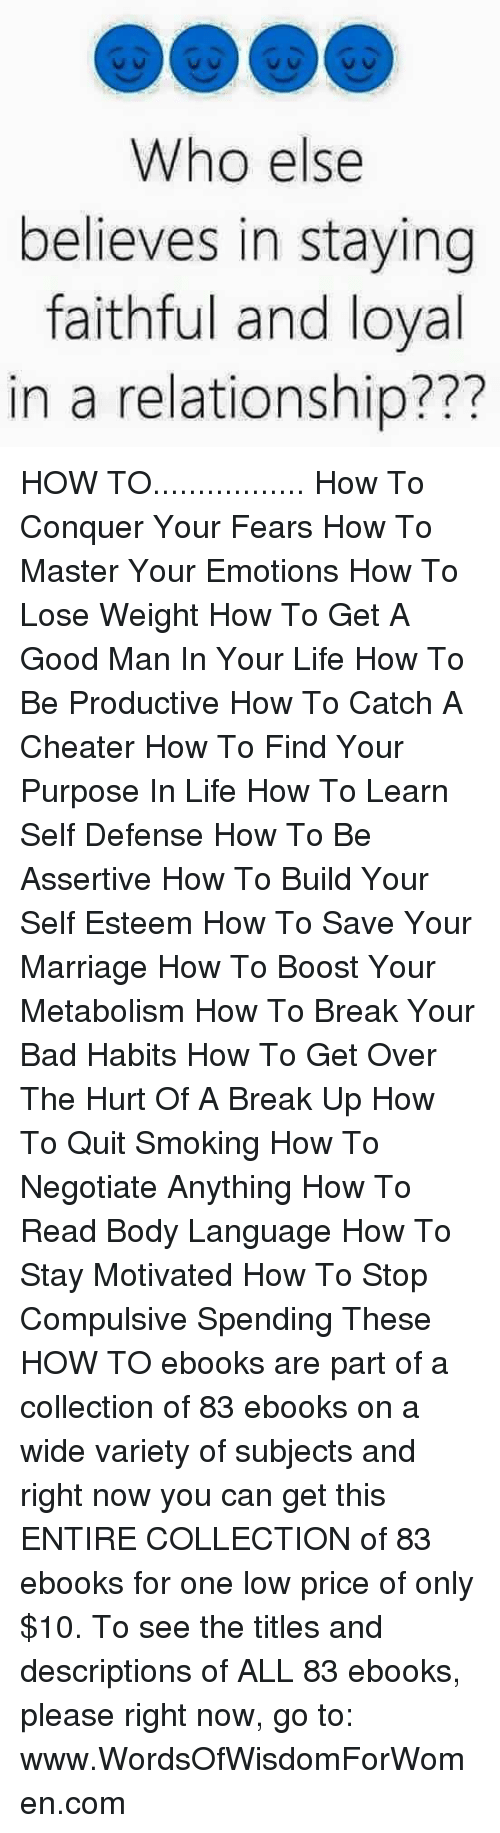 Quitting Smoking: Who else  believes in staying  faithful and loyal  in a relationship? HOW TO................. How To Conquer Your Fears How To Master Your Emotions How To Lose Weight How To Get A Good Man In Your Life  How To Be Productive  How To Catch A Cheater  How To Find Your Purpose In Life  How To Learn Self Defense How To Be Assertive   How To Build Your Self Esteem   How To Save Your Marriage  How To Boost Your Metabolism  How To Break Your Bad Habits   How To Get Over The Hurt Of A Break Up  How To Quit Smoking  How To Negotiate Anything  How To Read Body Language   How To Stay Motivated  How To Stop Compulsive Spending    These HOW TO ebooks are part of a collection of 83 ebooks on a wide variety of subjects and right now you can get this ENTIRE COLLECTION of 83 ebooks for one low price of only $10. To see the titles and descriptions of ALL 83 ebooks, please right now, go to: www.WordsOfWisdomForWomen.com